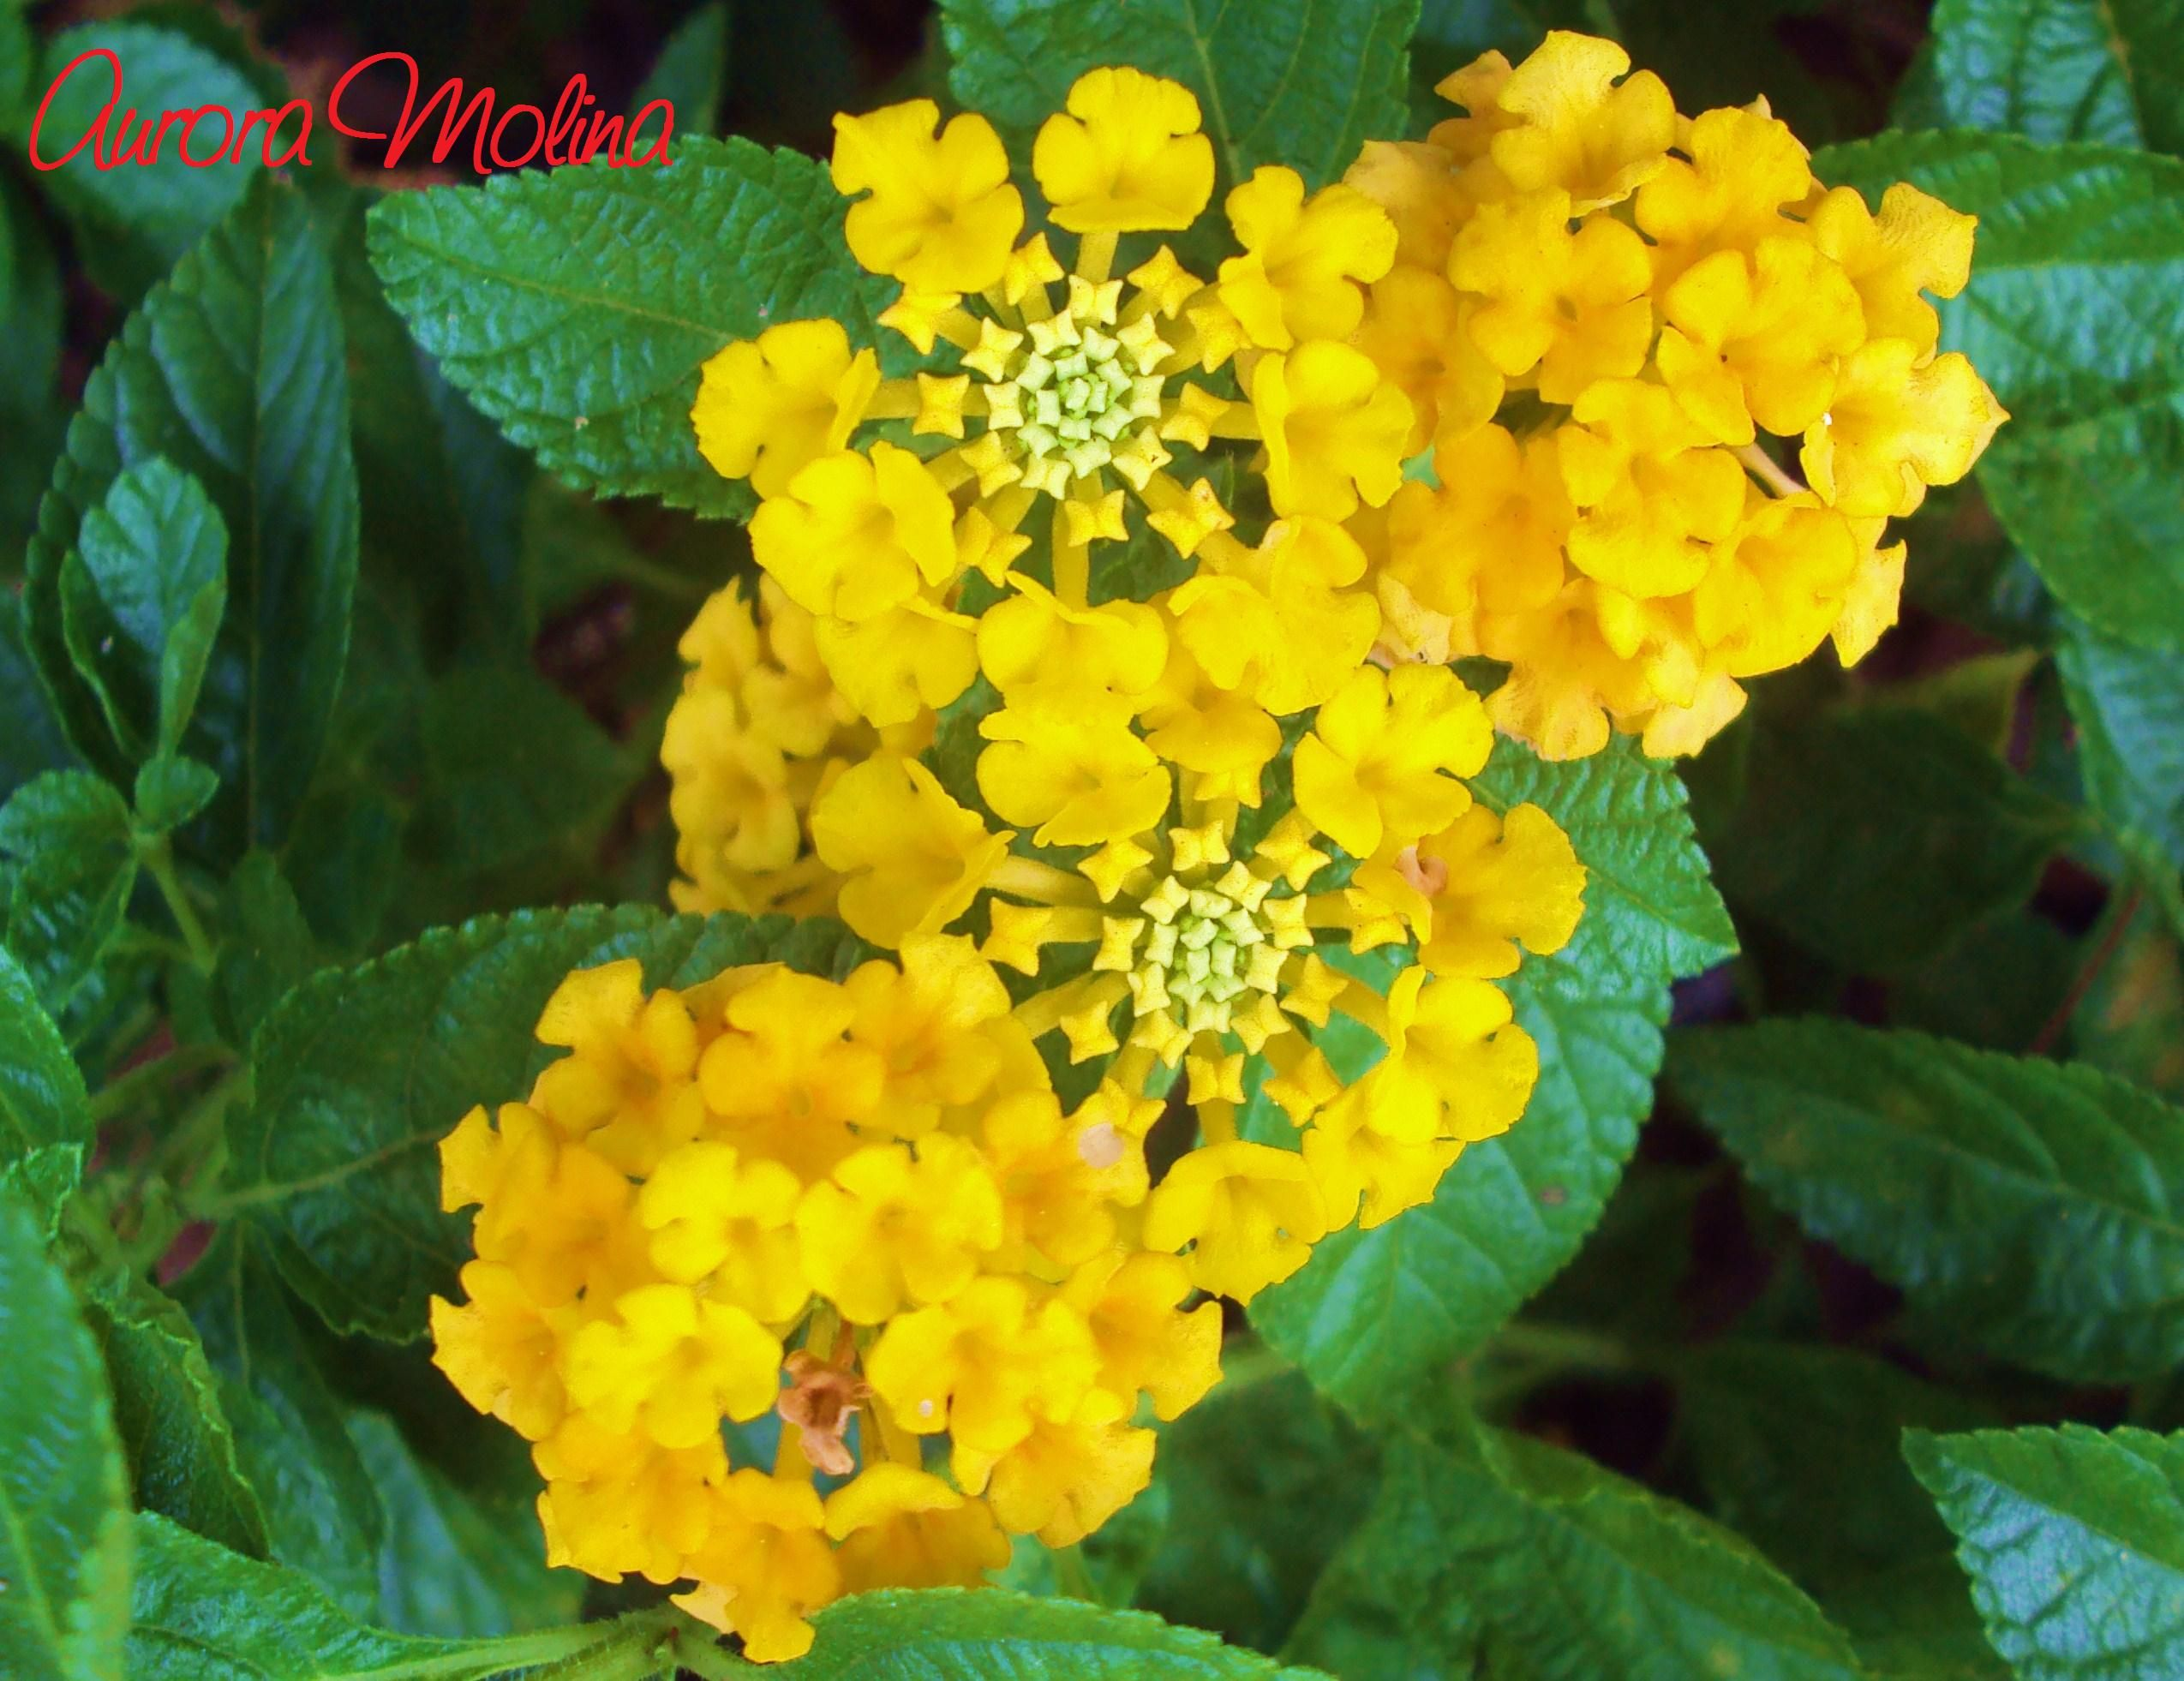 Lantana Camara Also Known As Spanish Flag Or West Indian Lantana These Delicate Flowers Are Butterfly Magnets It Has Lantana Camara Lantana Delicate Flower